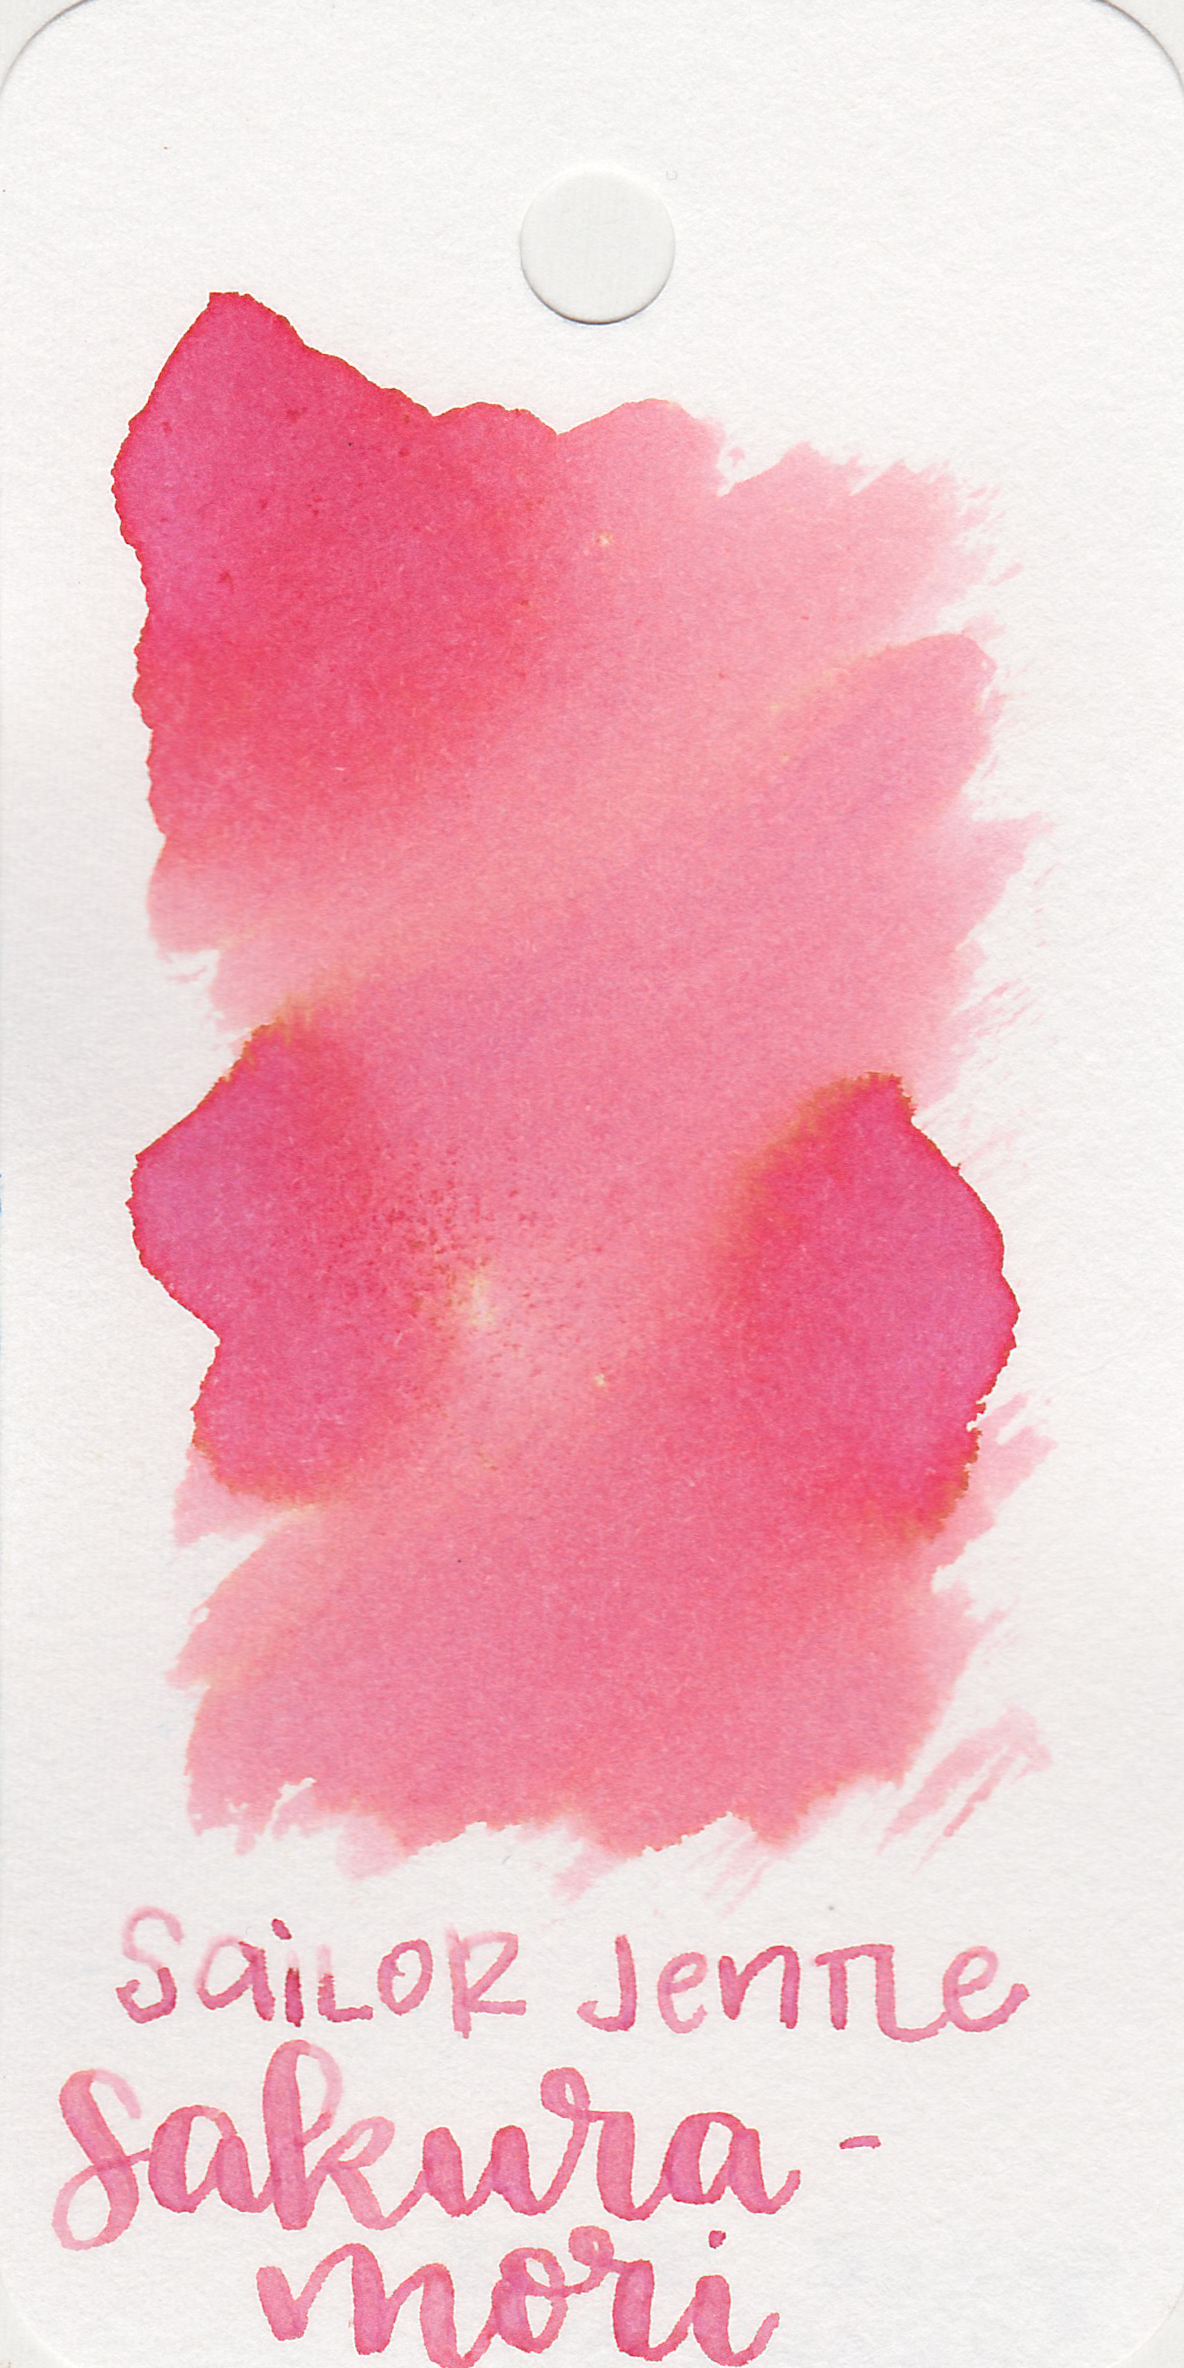 The color: - Sakura-mori is a beautiful spring pink with a heavy yellow undertone.